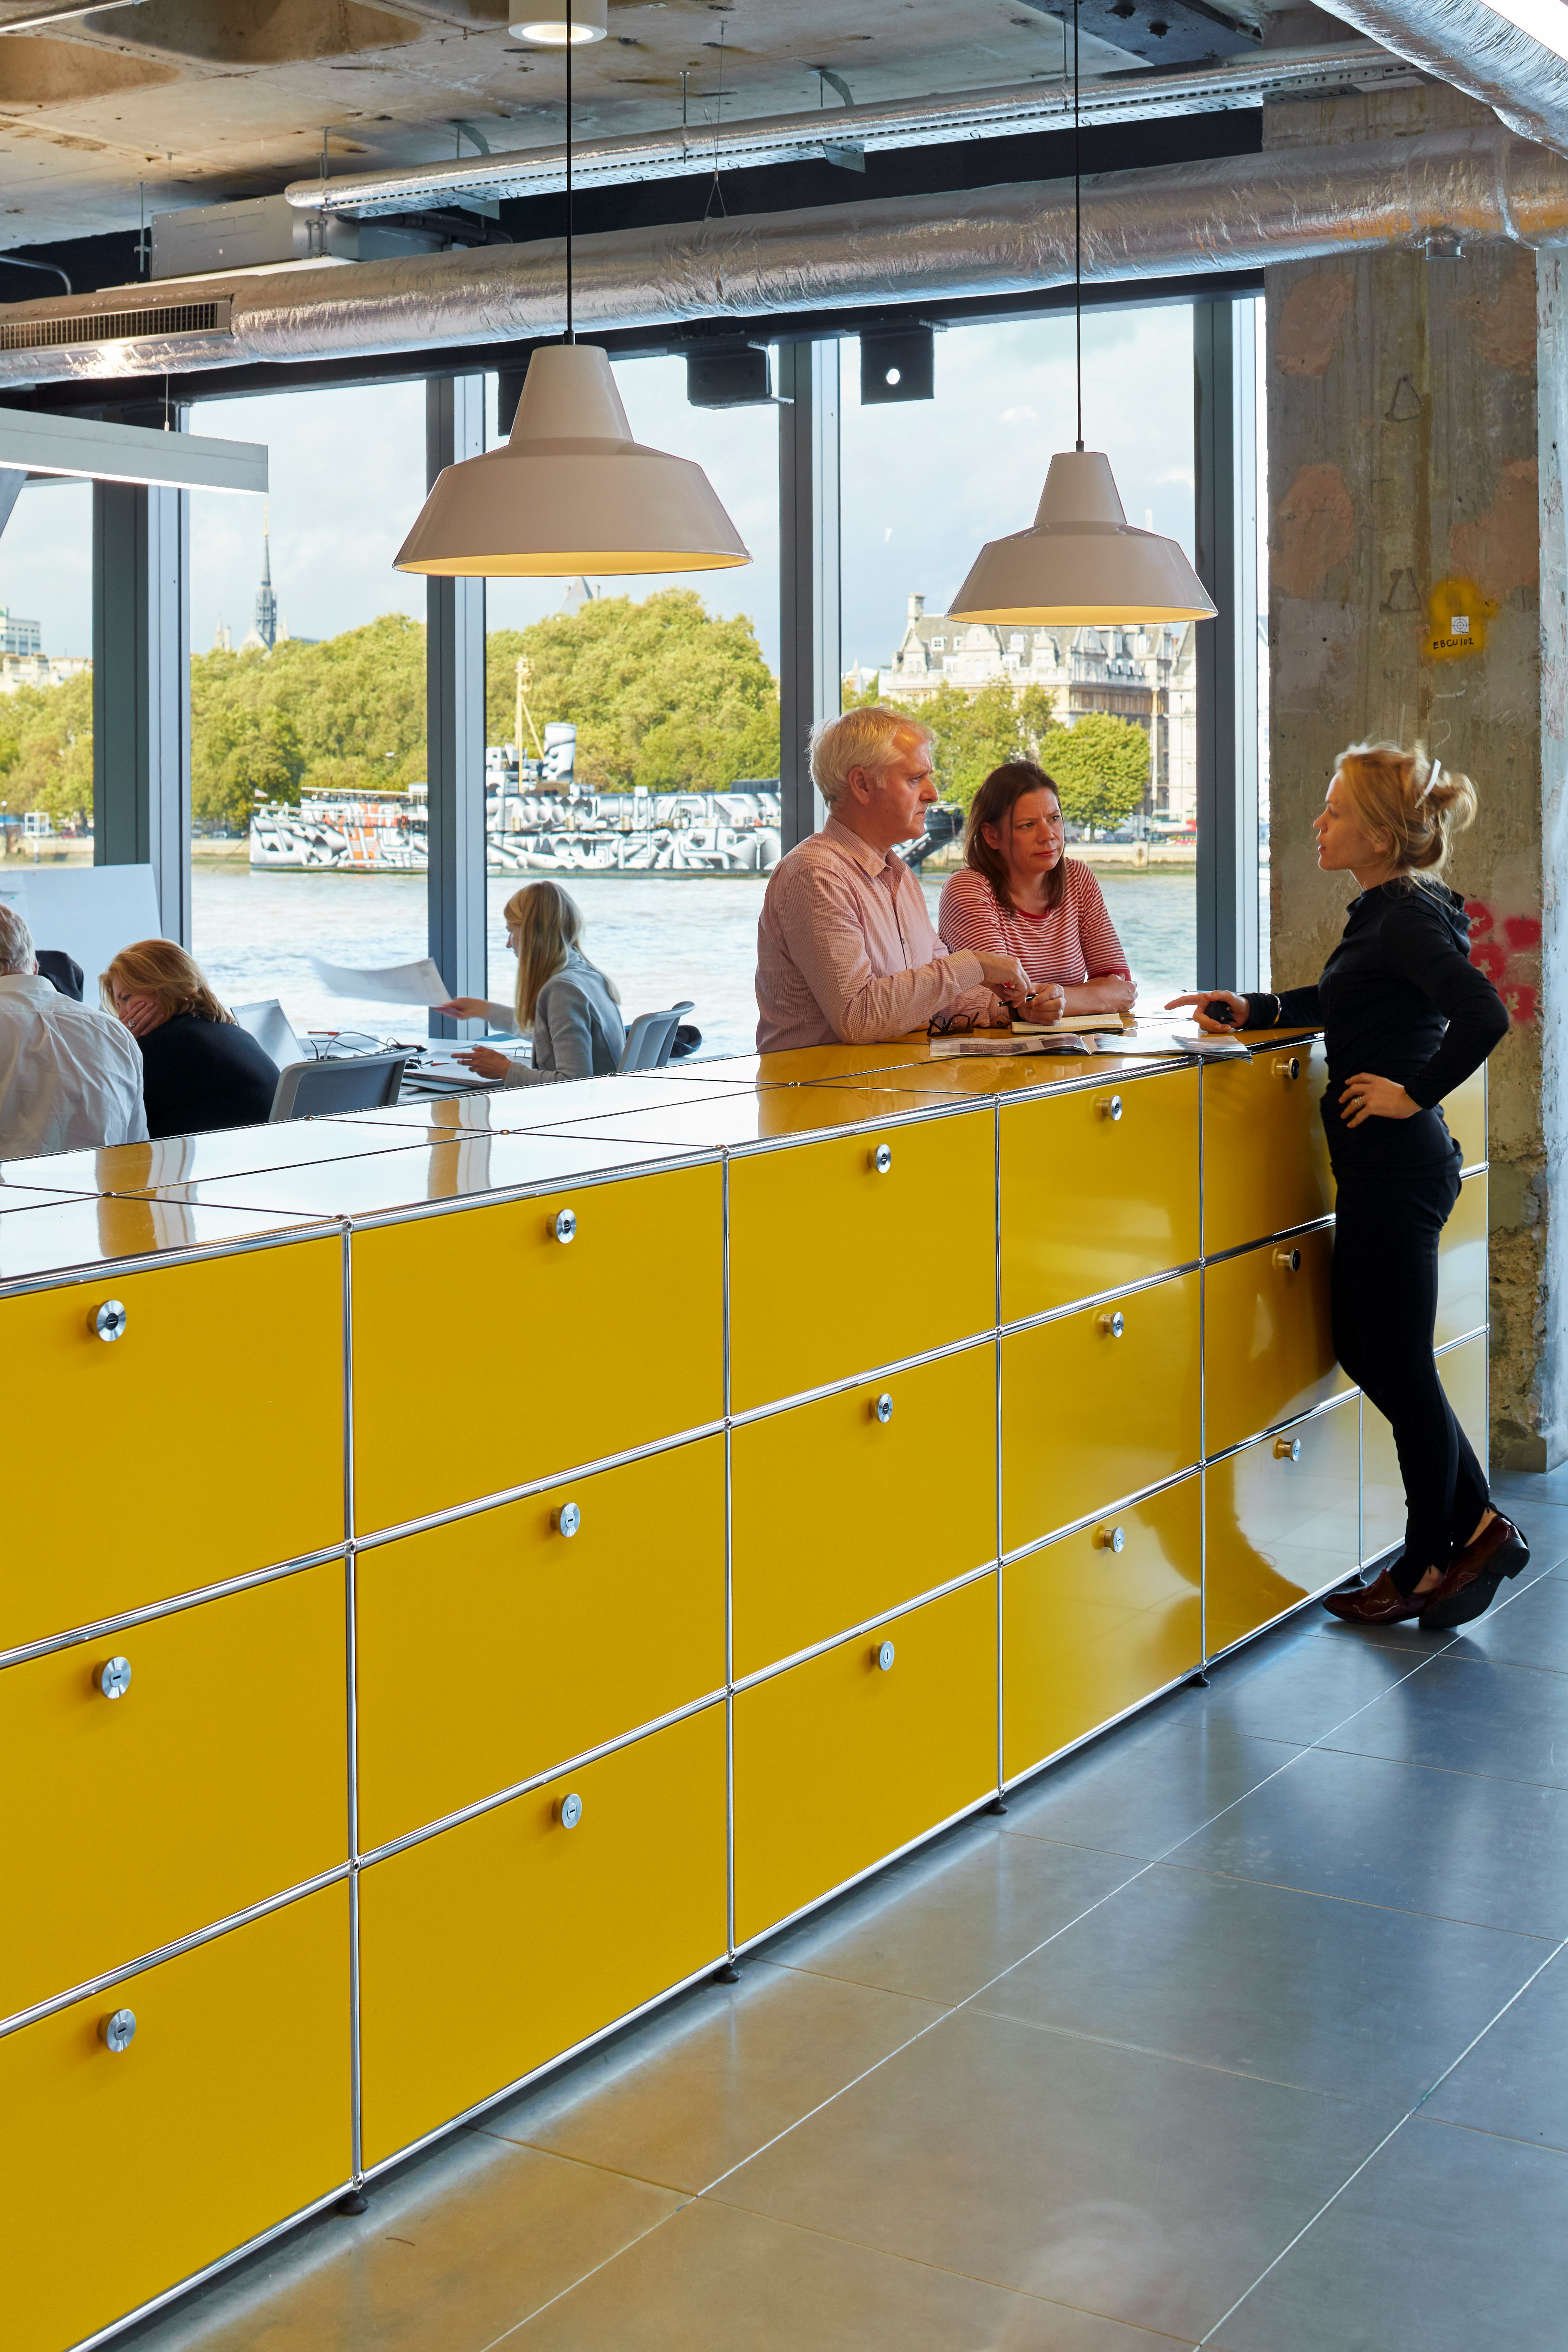 golden yellow USM haller office dividers with storage cabinets in an industrial style office